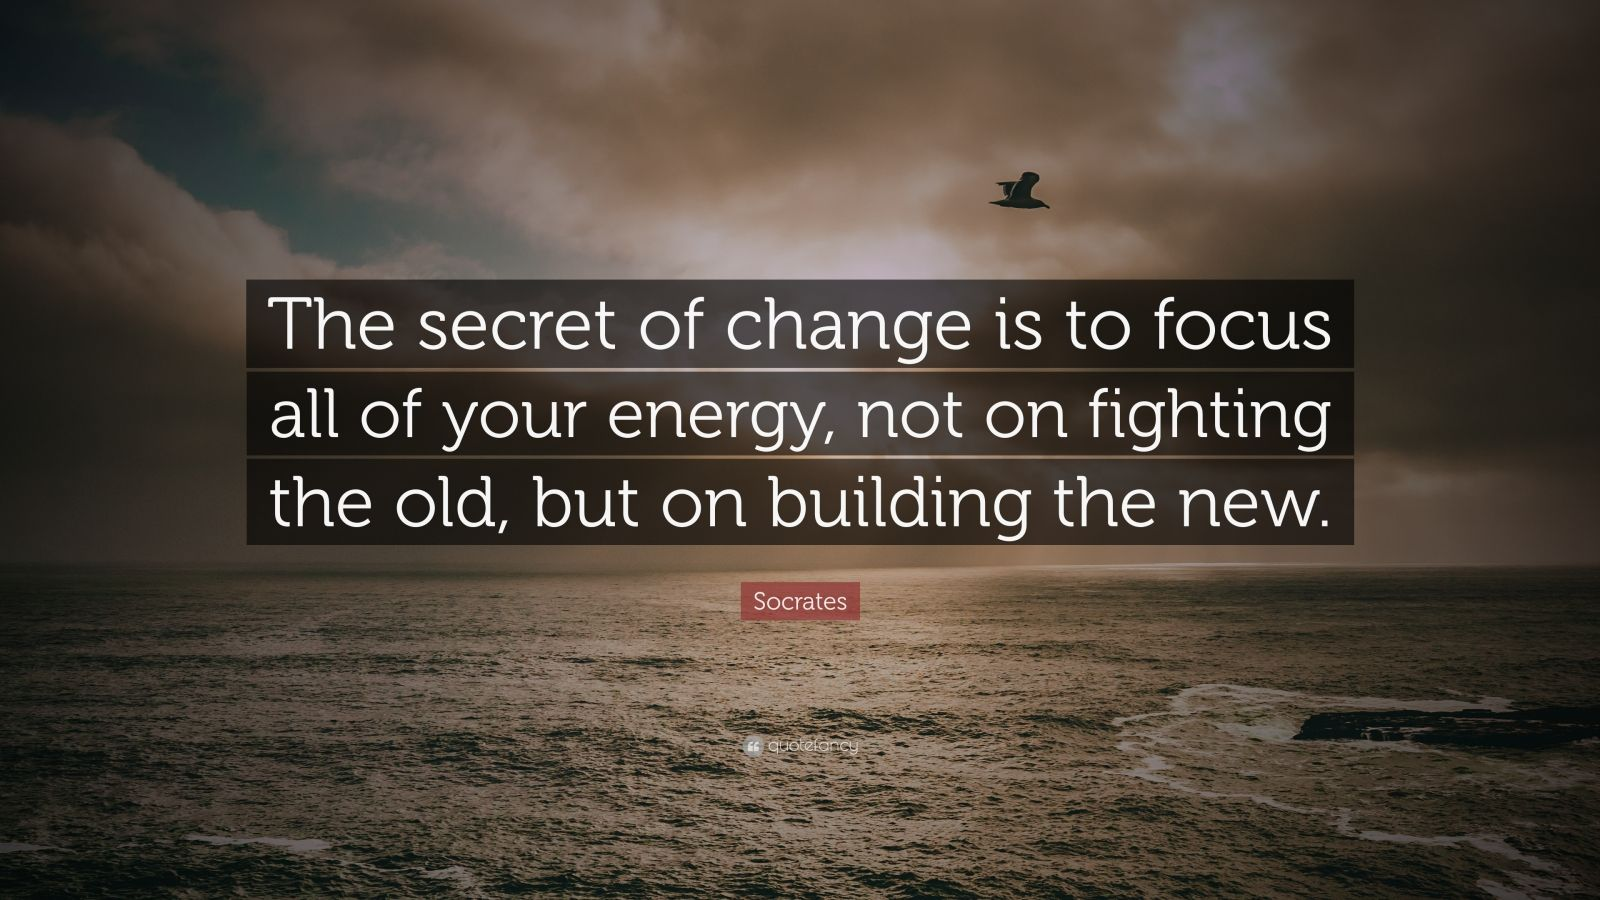 William Shakespeare Love Quotes Wallpaper Socrates Quote The Secret Of Change Is To Focus All Of